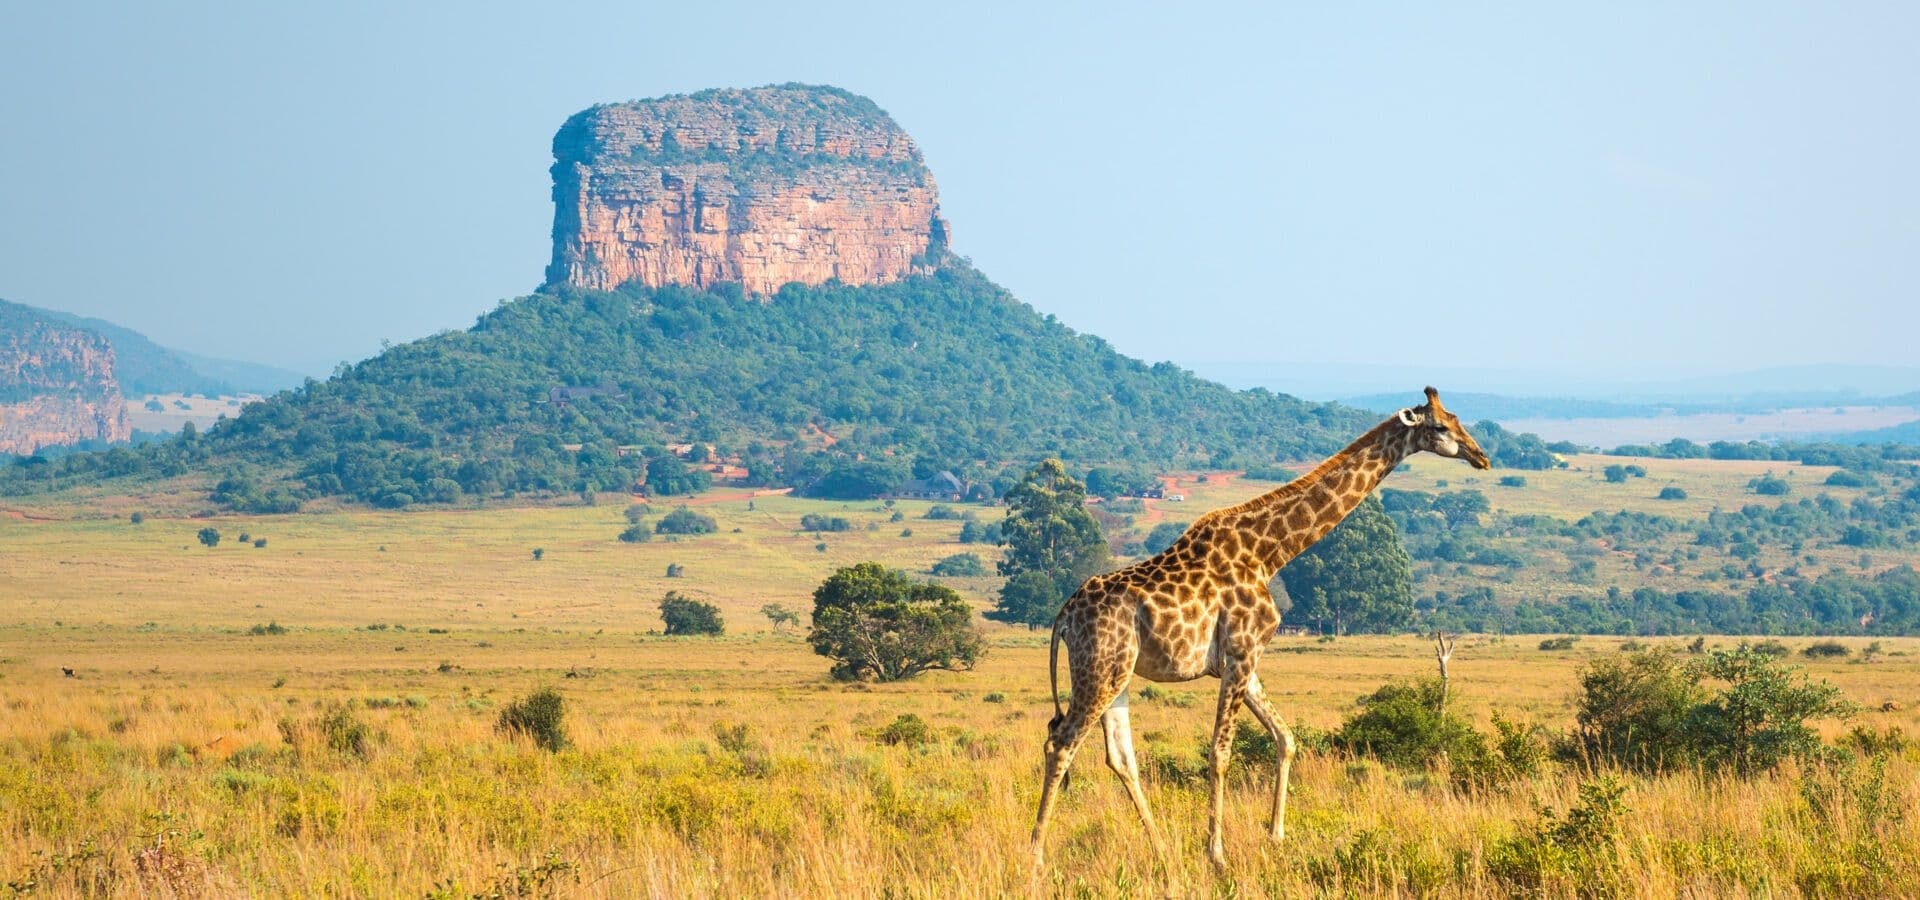 Giraffe travelling across the wild of South Africa travel africa